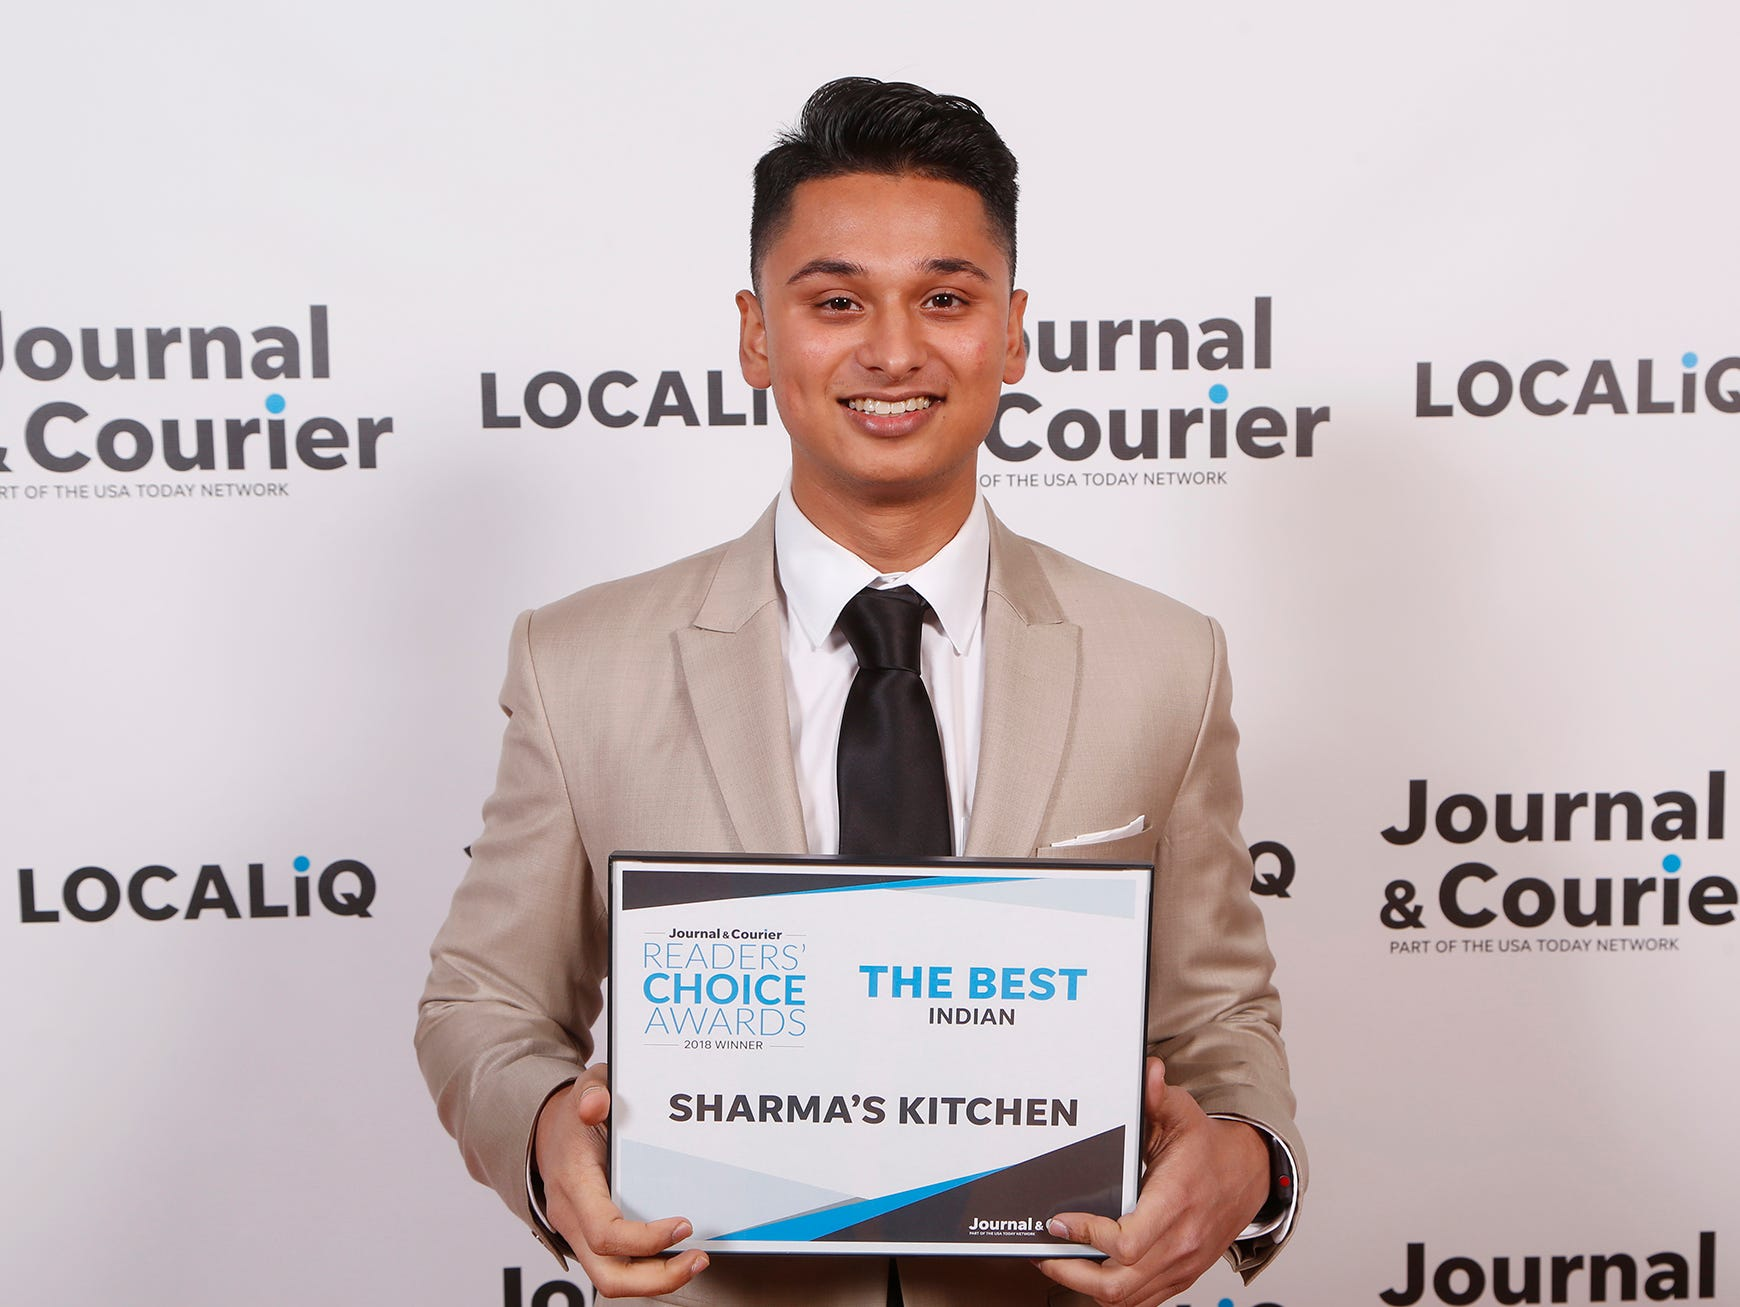 Sharma's Kitchen, Journal & Courier Readers' Choice Awards winner for the best Indian.